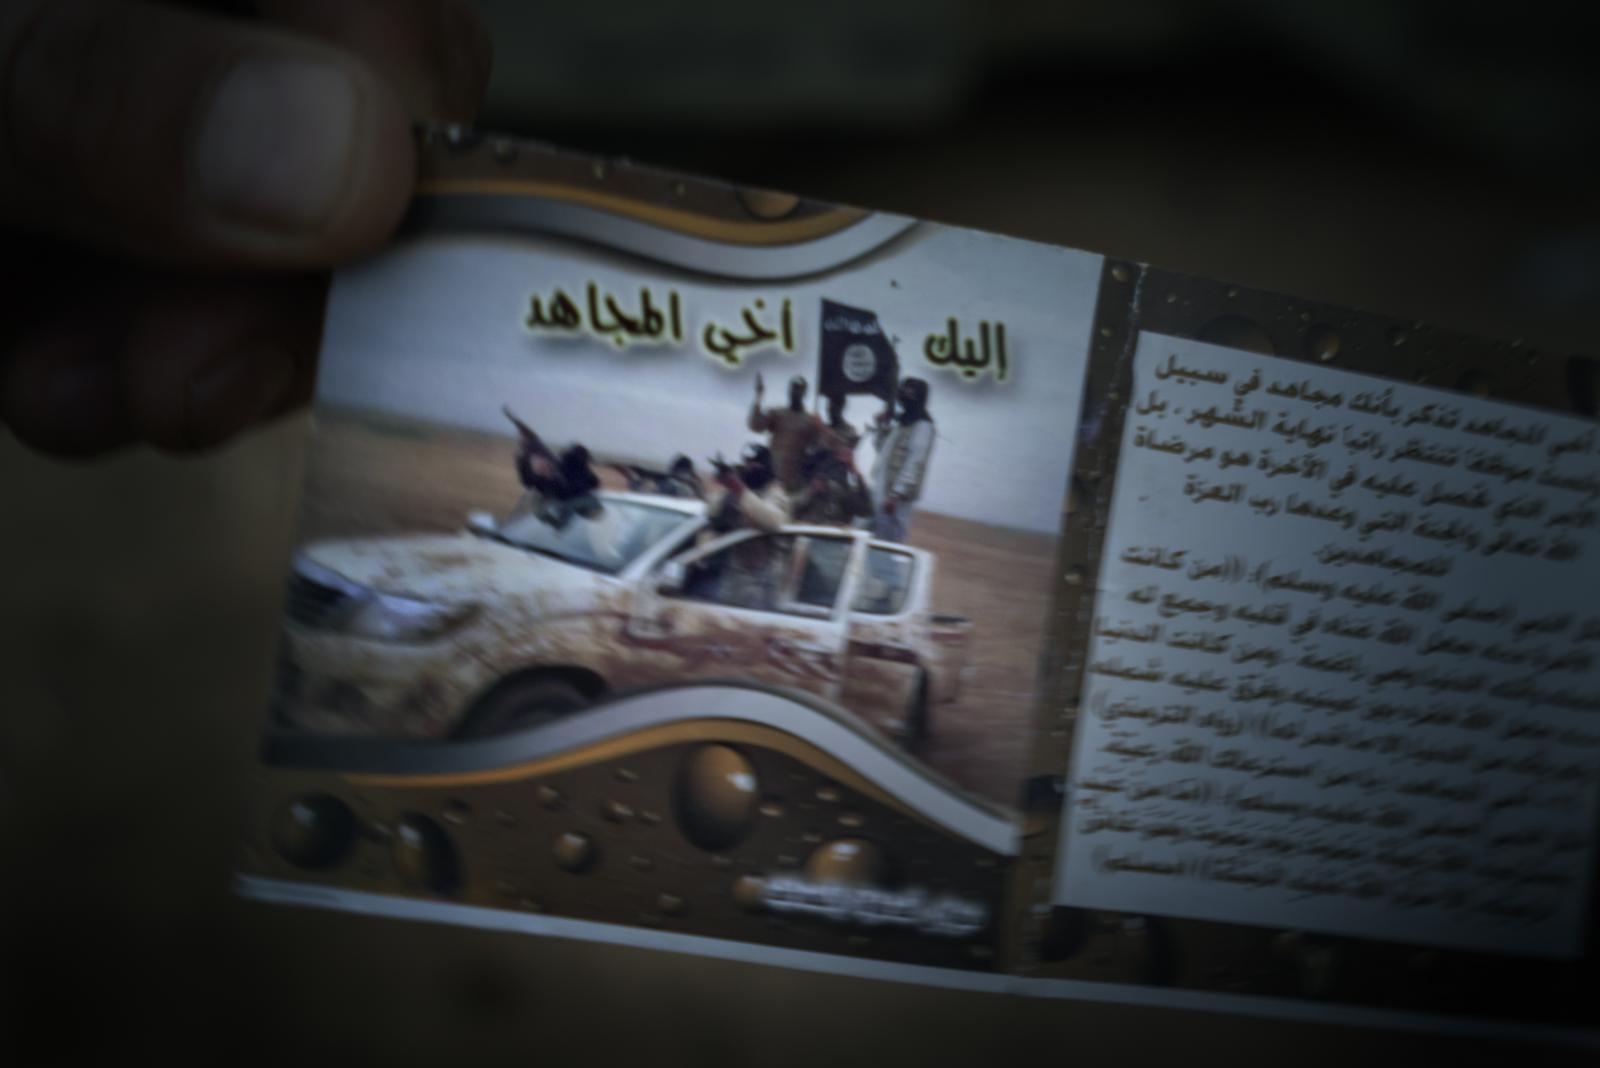 ISIS propaganda pamphlet that contains a hadith, a story that represents the sayings and actions of the Prophet transmitted by his companions, considered the second source of Islam after the Koran (Iraq, 2016)